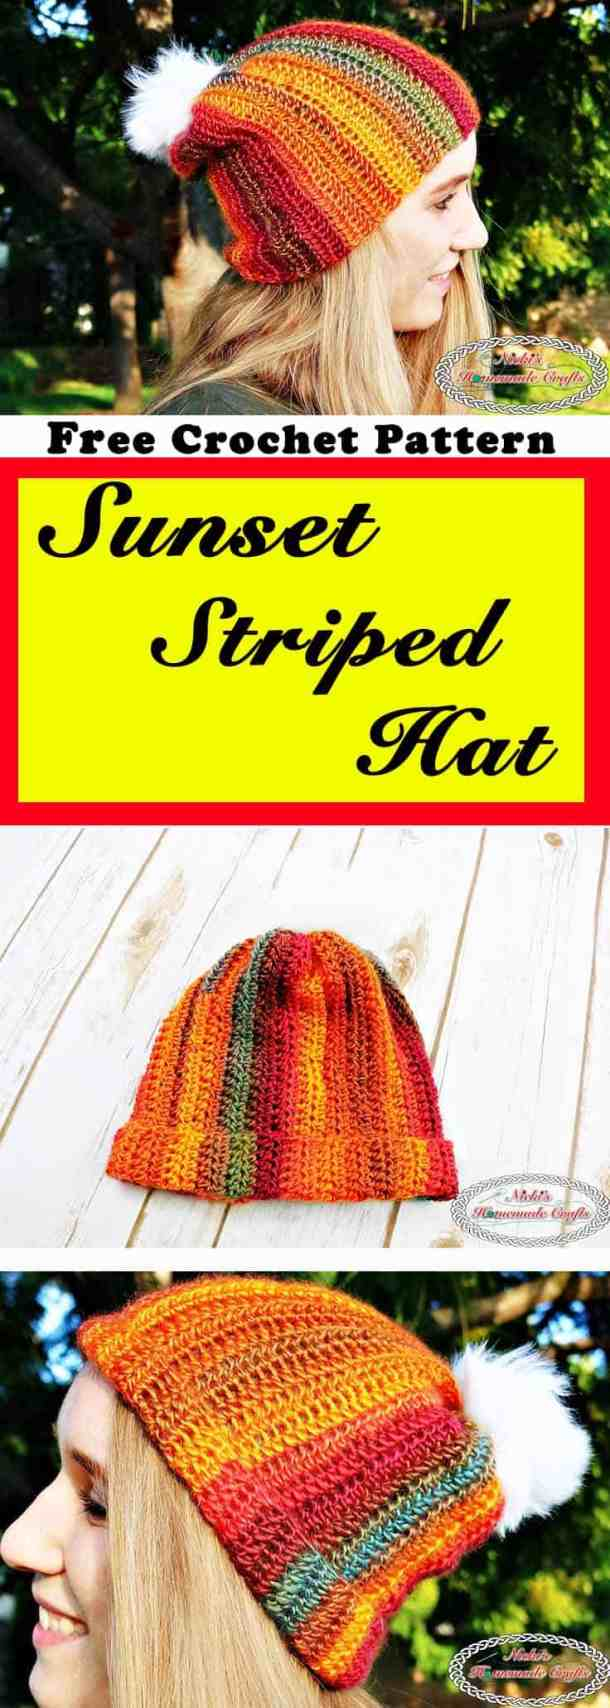 Sunset Striped Hat - Free Crochet Pattern by Nicki's Homemade Crafts #striped #crochet #hat #redheart #unforgetable #yarn